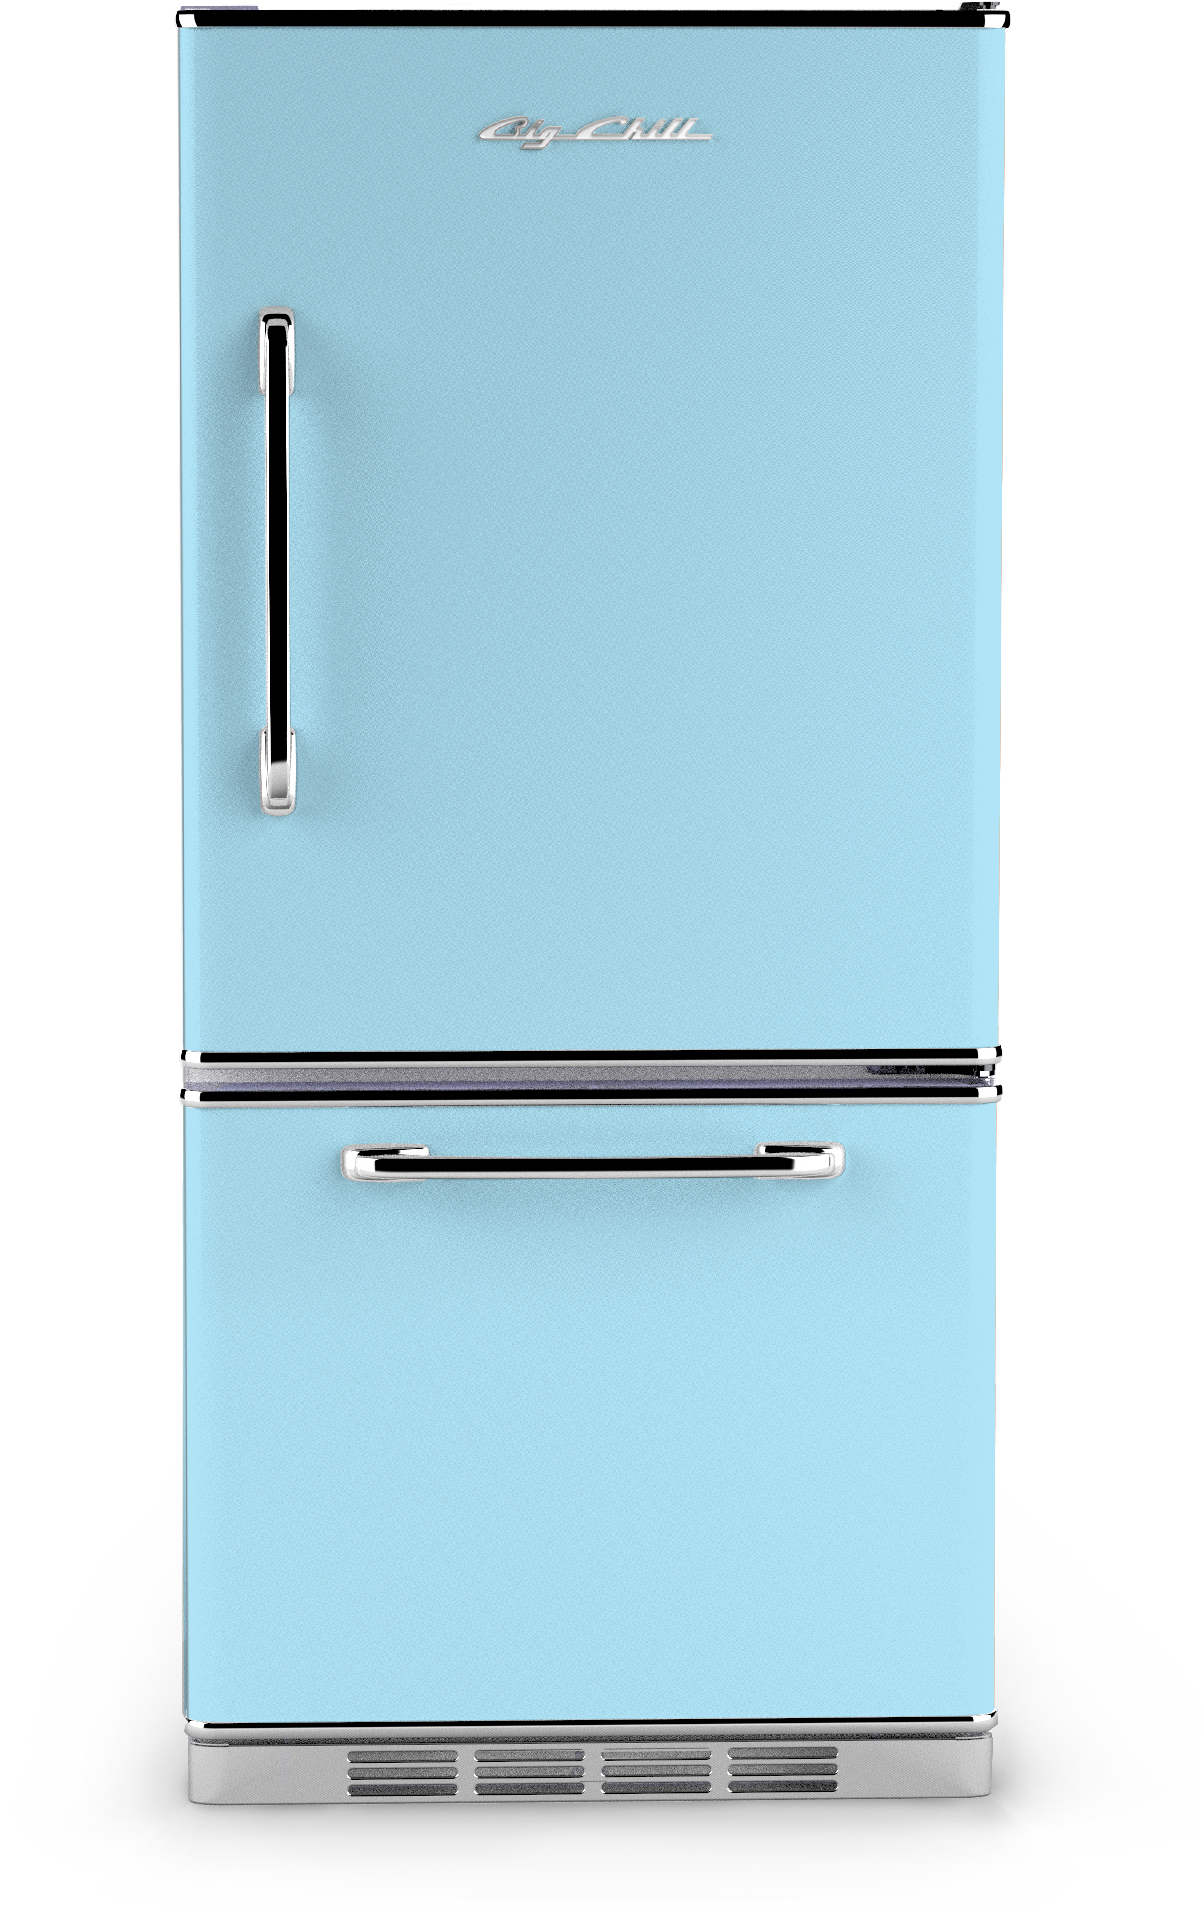 Big Chill Retro Refrigerator Retropolitan 187 Bars amp Booths : Big Chill Retro Fridge Retropolitan Blue from barsandbooths.com size 1203 x 1913 jpeg 1157kB